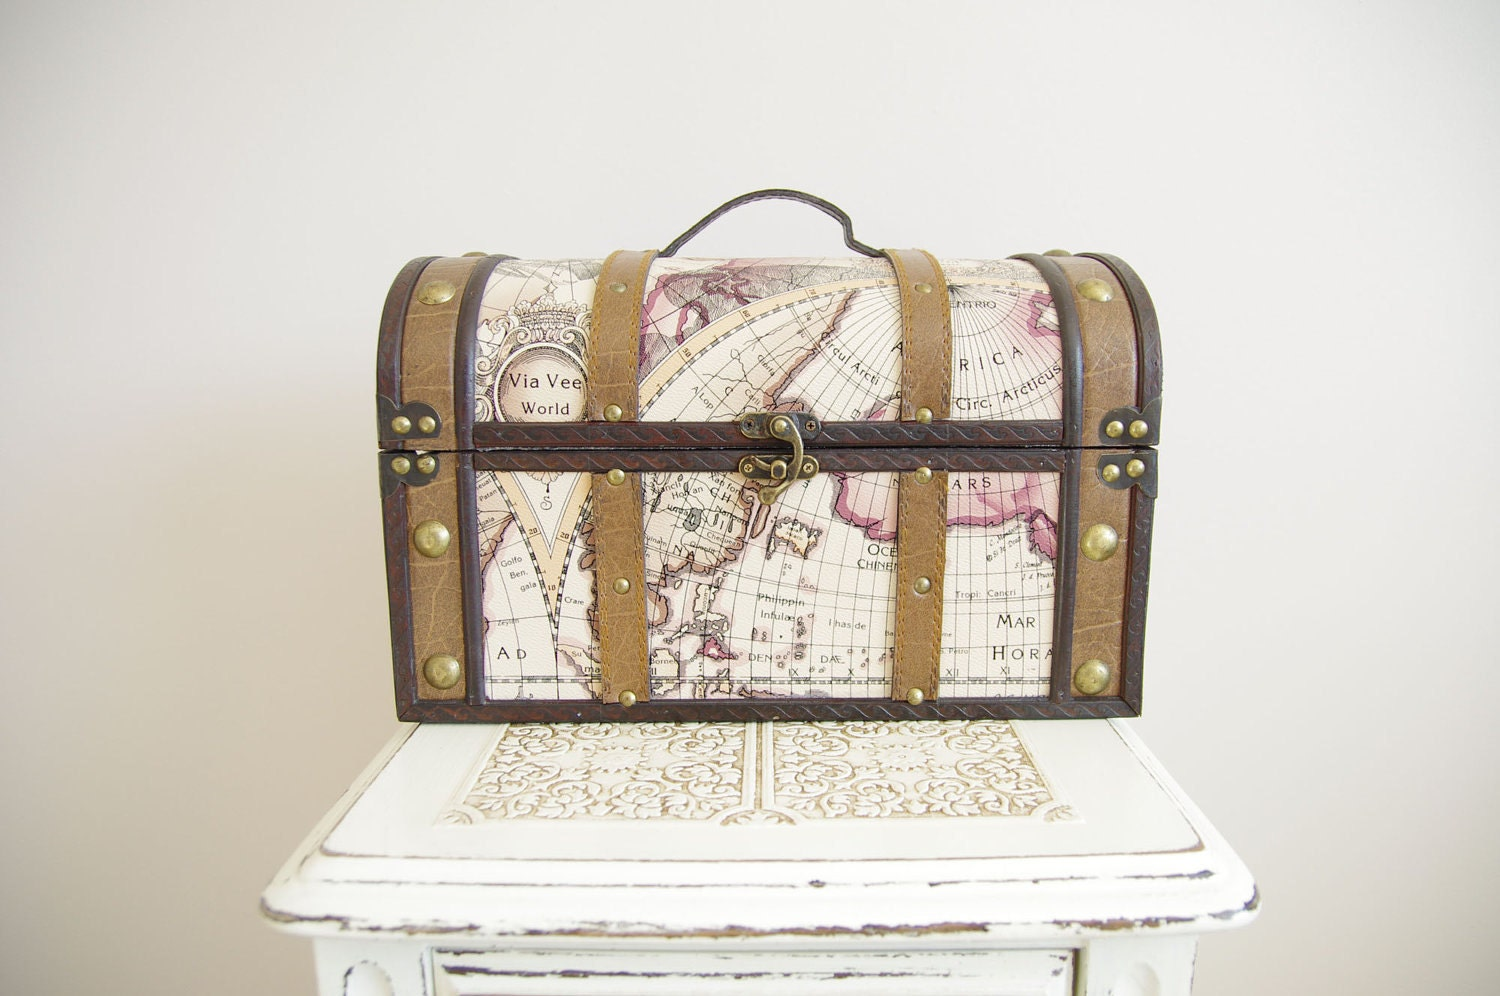 Large Trunk with Map - Wedding Card Box - Travel Themed, Vintage Style